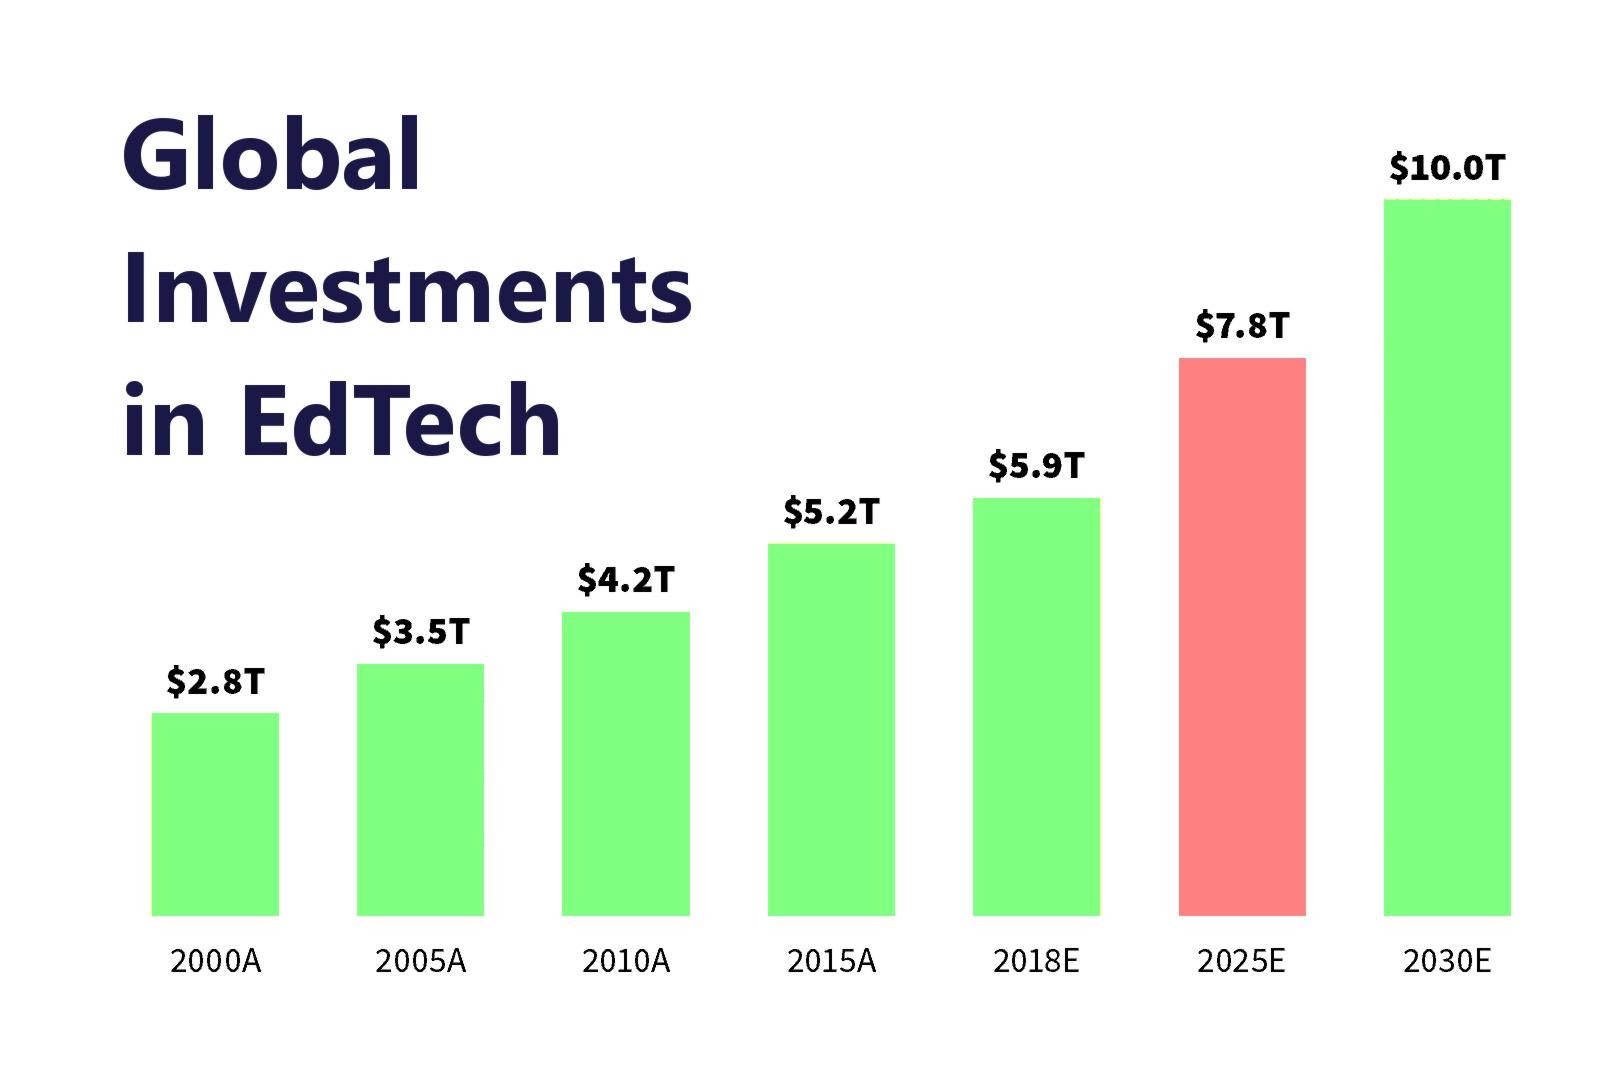 Global EdTech Development Investments Graph Over Years